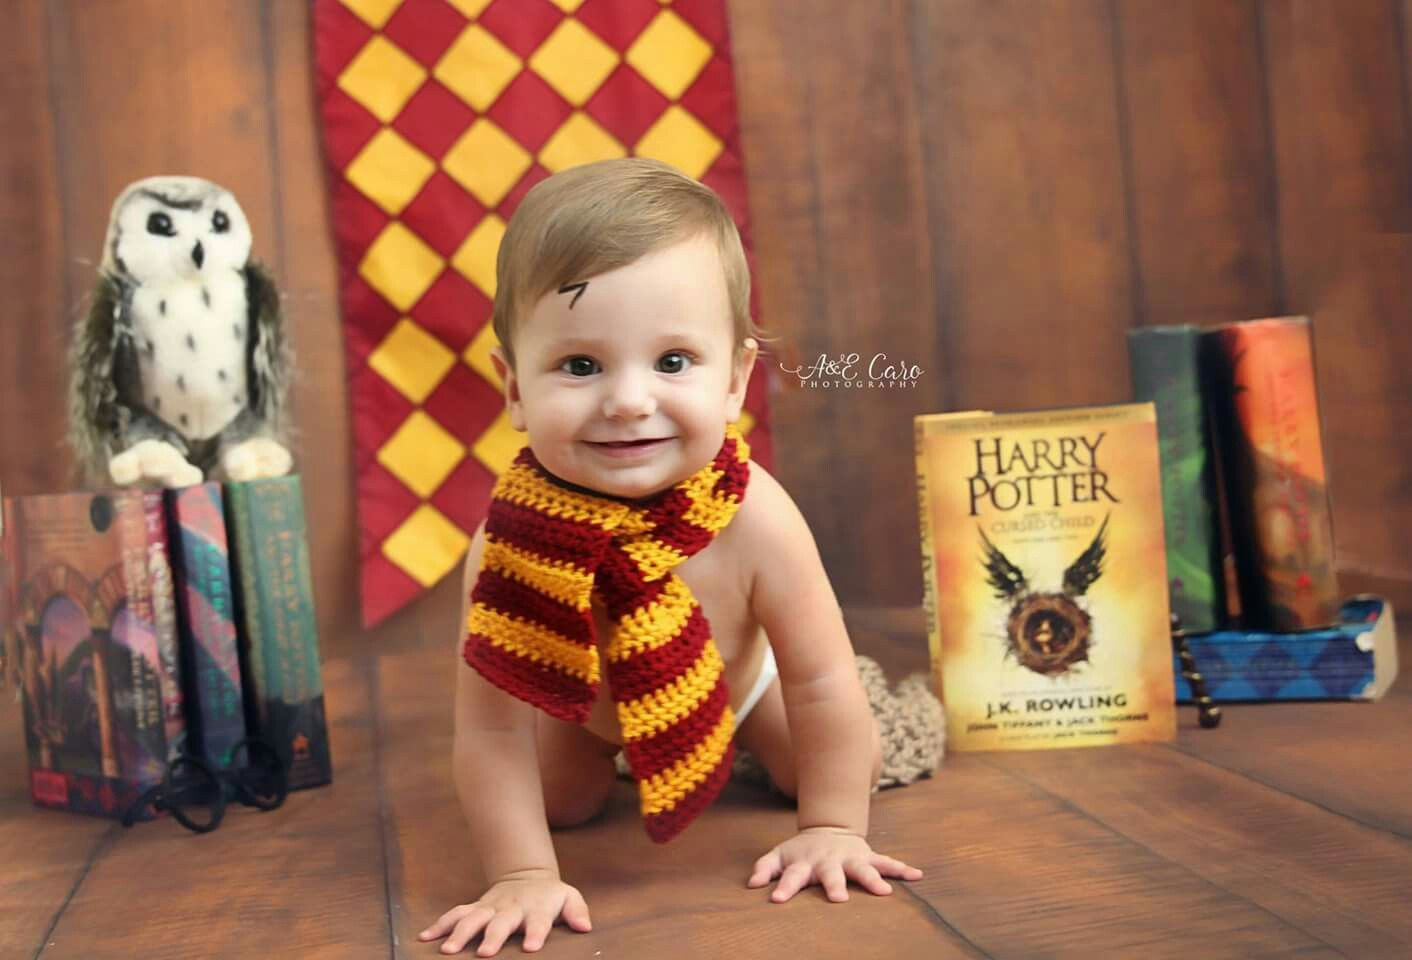 Harry potter 8 month session #babysfirstyear #columbusgaphotographer #aecarophotography